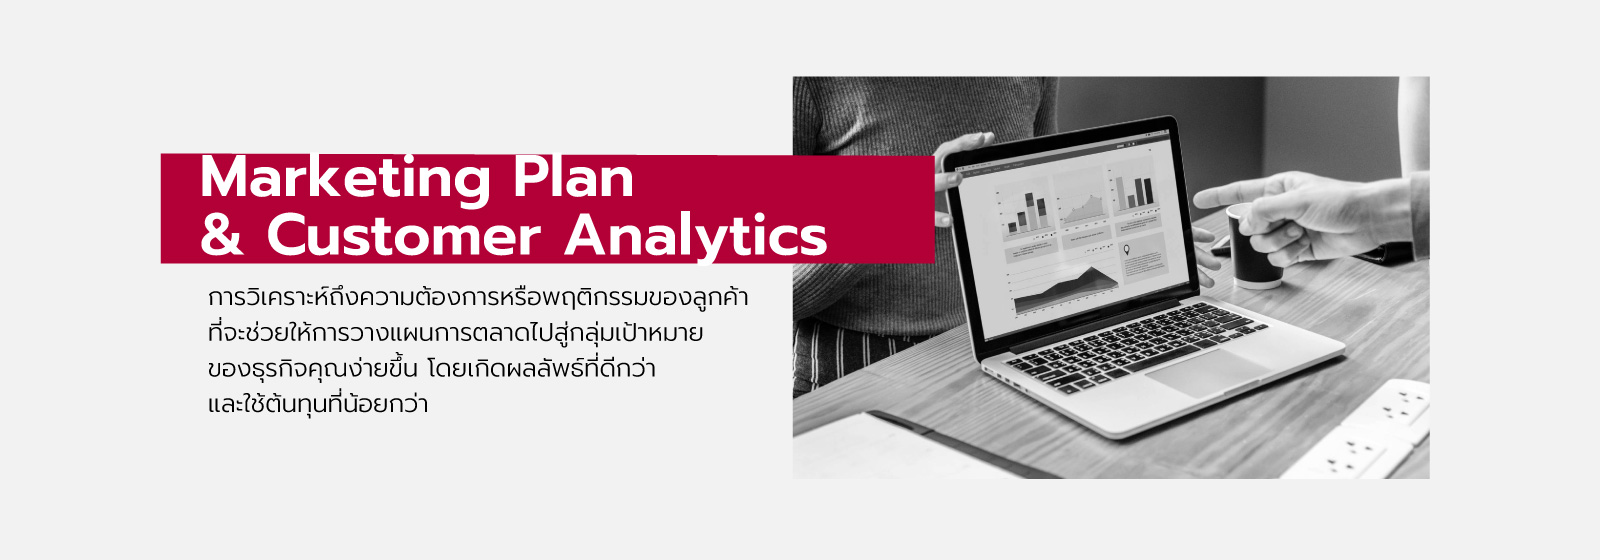 Marketing plan & Customer Analytics